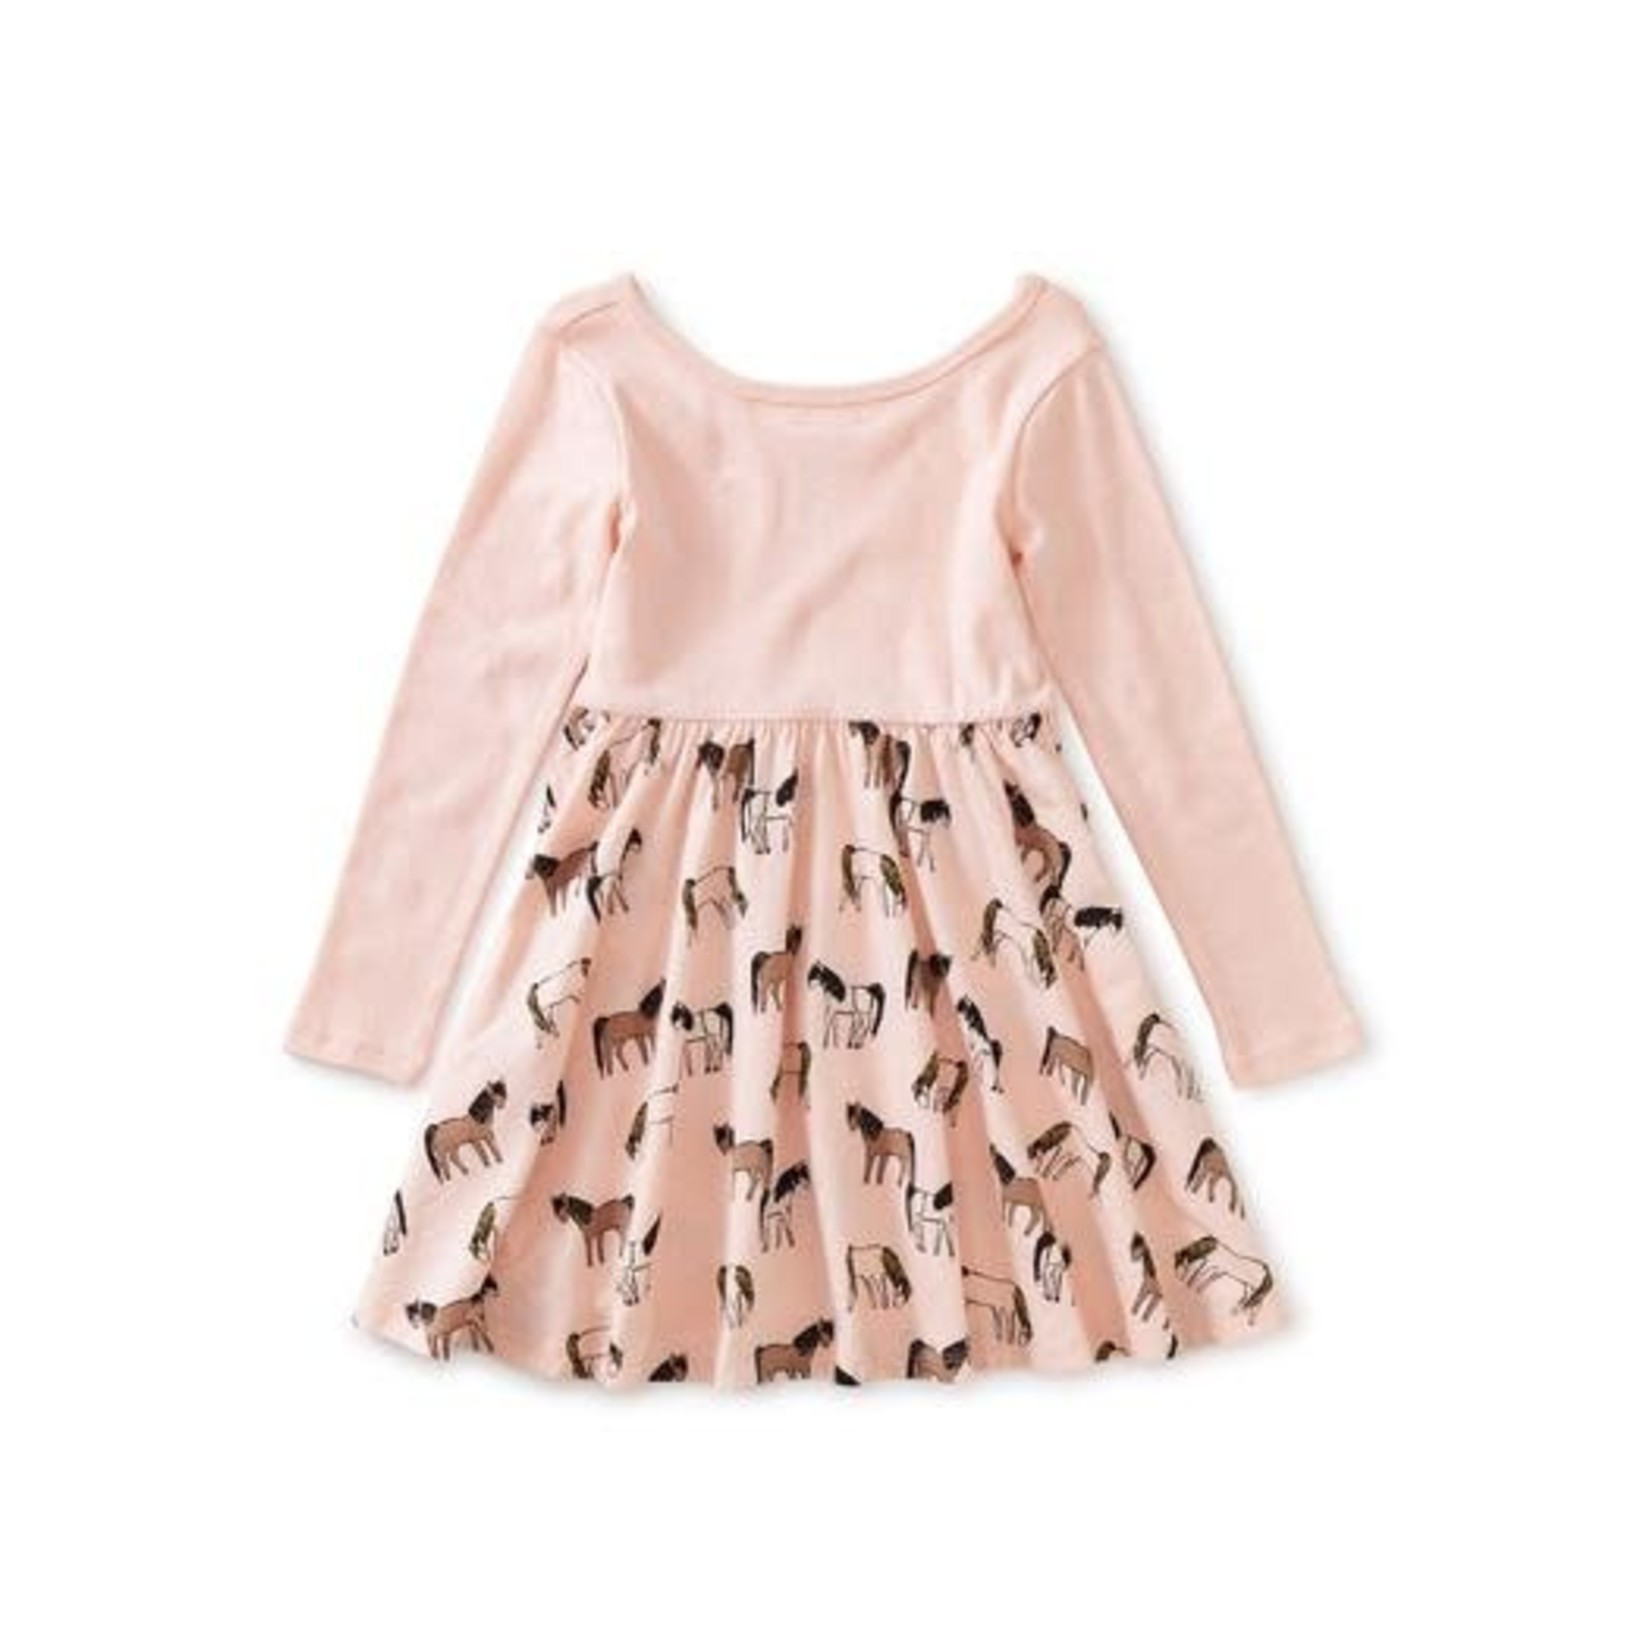 Tea Collection Ballet Skirted Dress - Painted Ponies